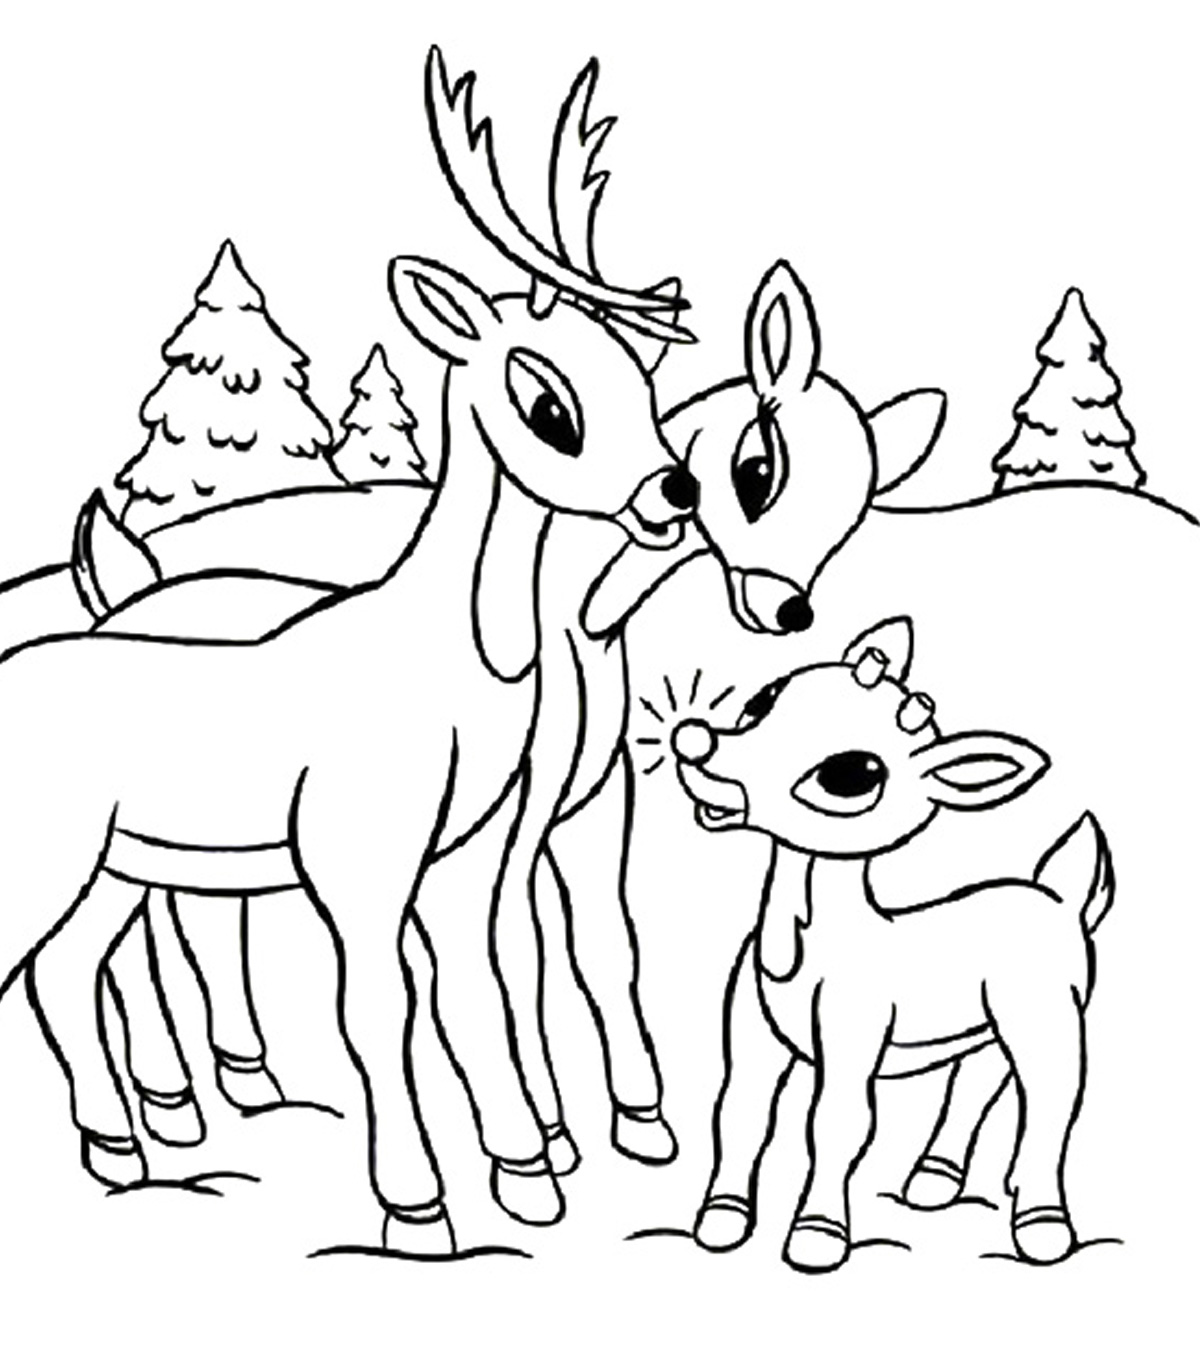 christmas coloring pages reindeer the holiday site santa39s reindeer coloring pages reindeer coloring christmas pages